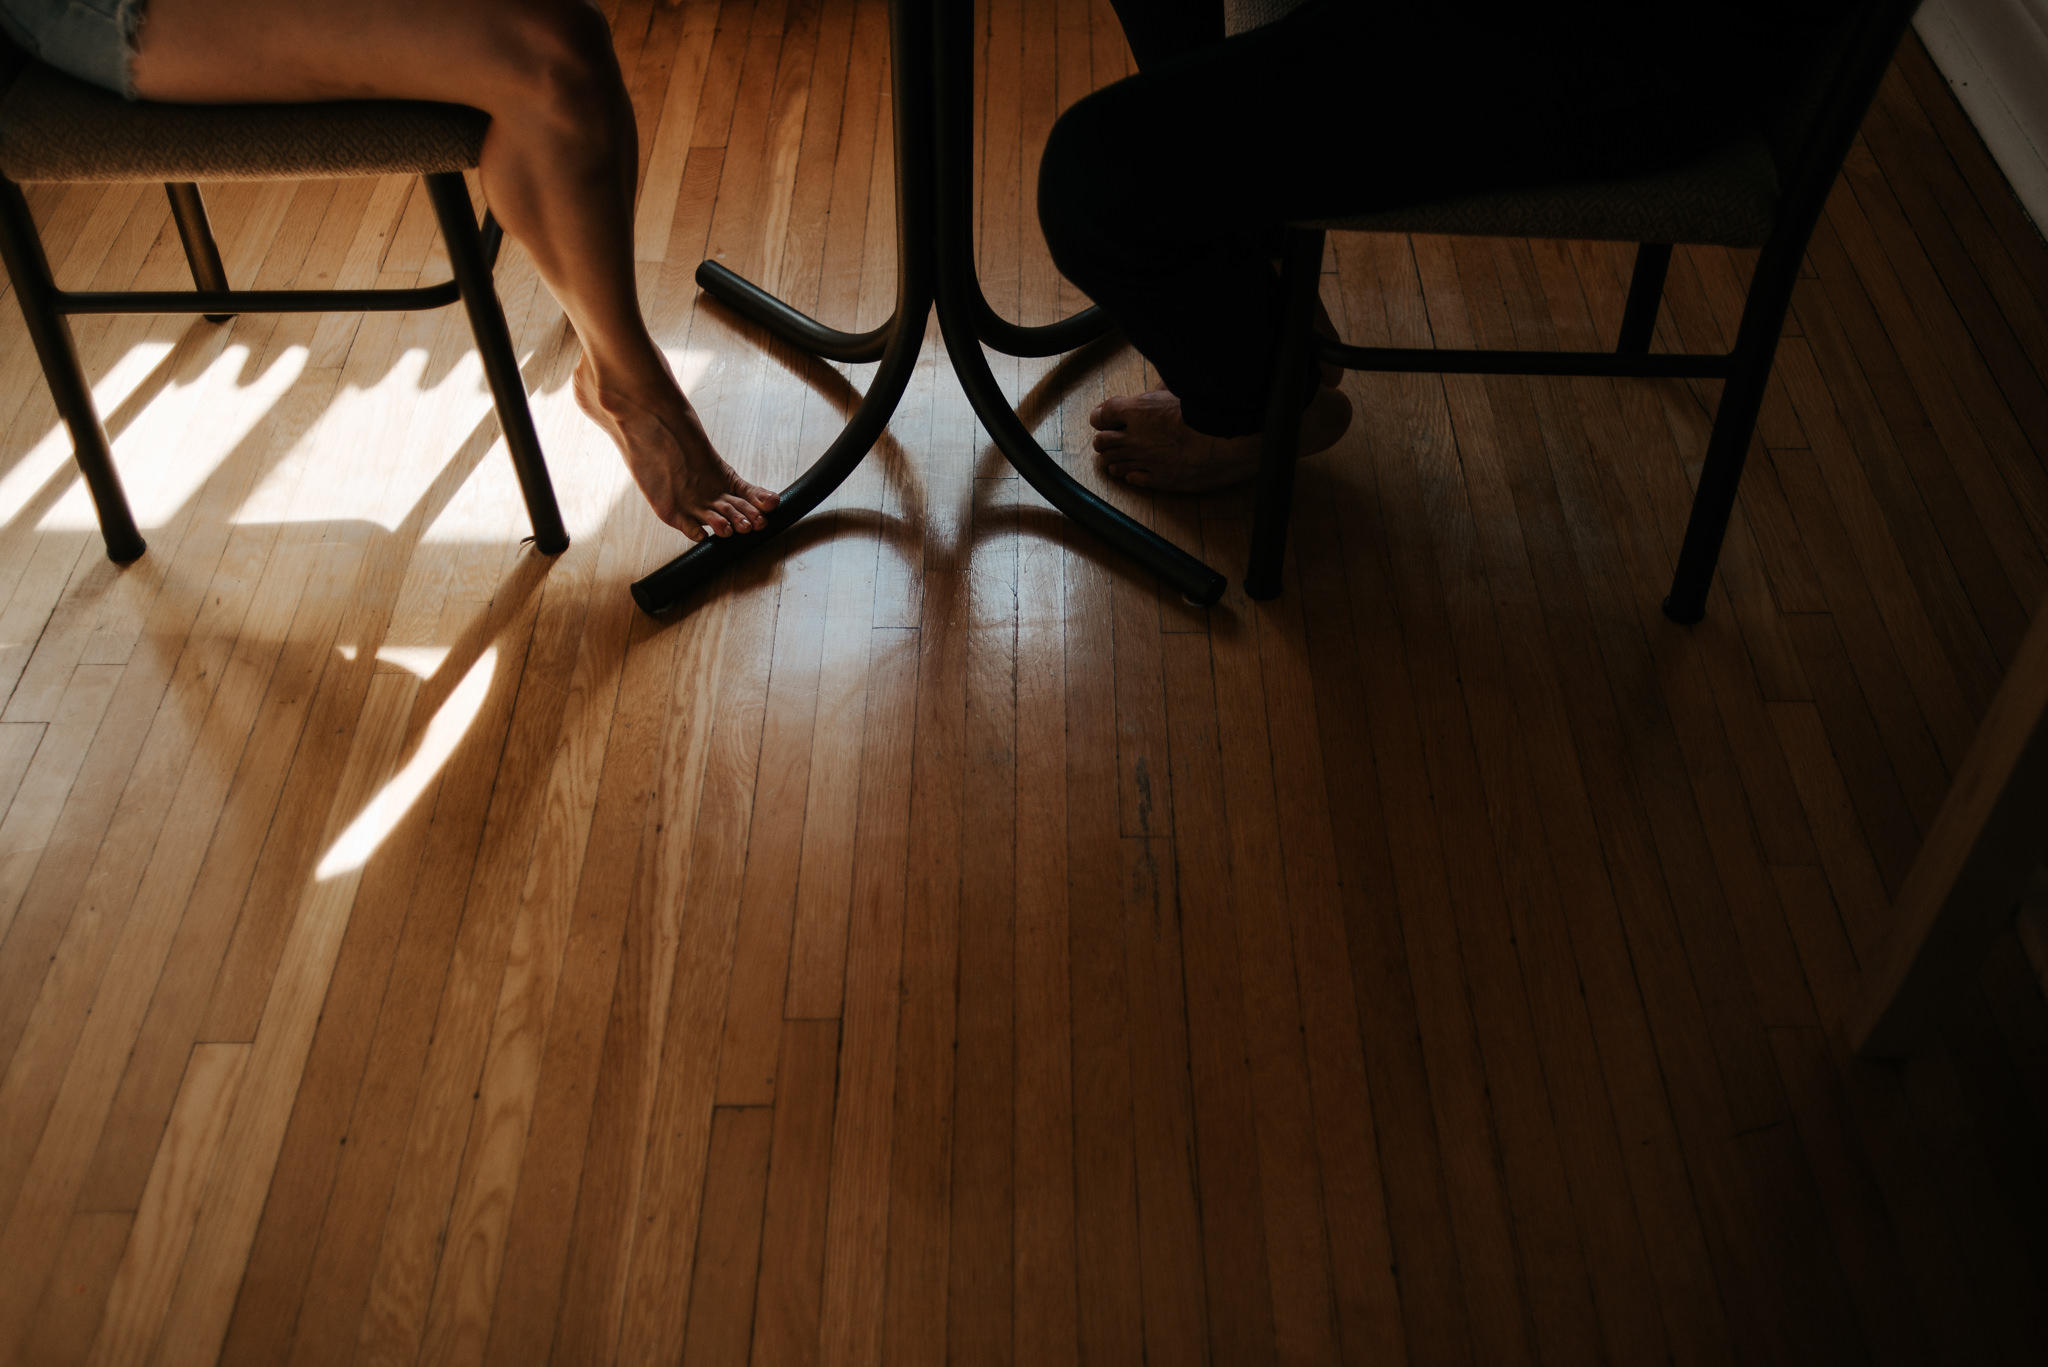 Couple feet while sitting at table in apartment